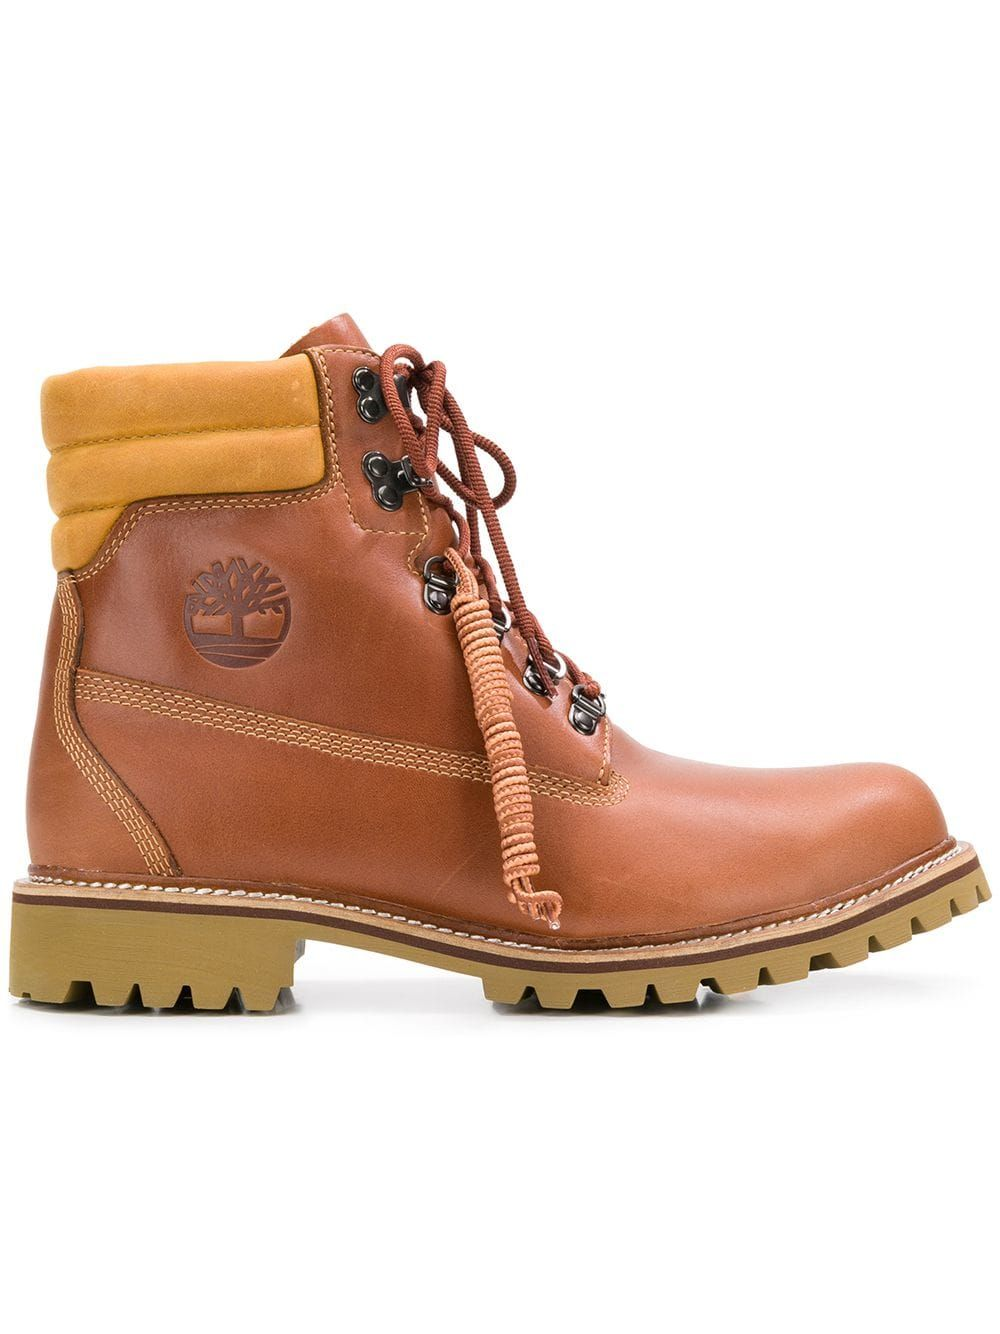 d349d4f461e TIMBERLAND TIMBERLAND 6 INCH 640 BELOW ANKLE BOOTS - BROWN ...